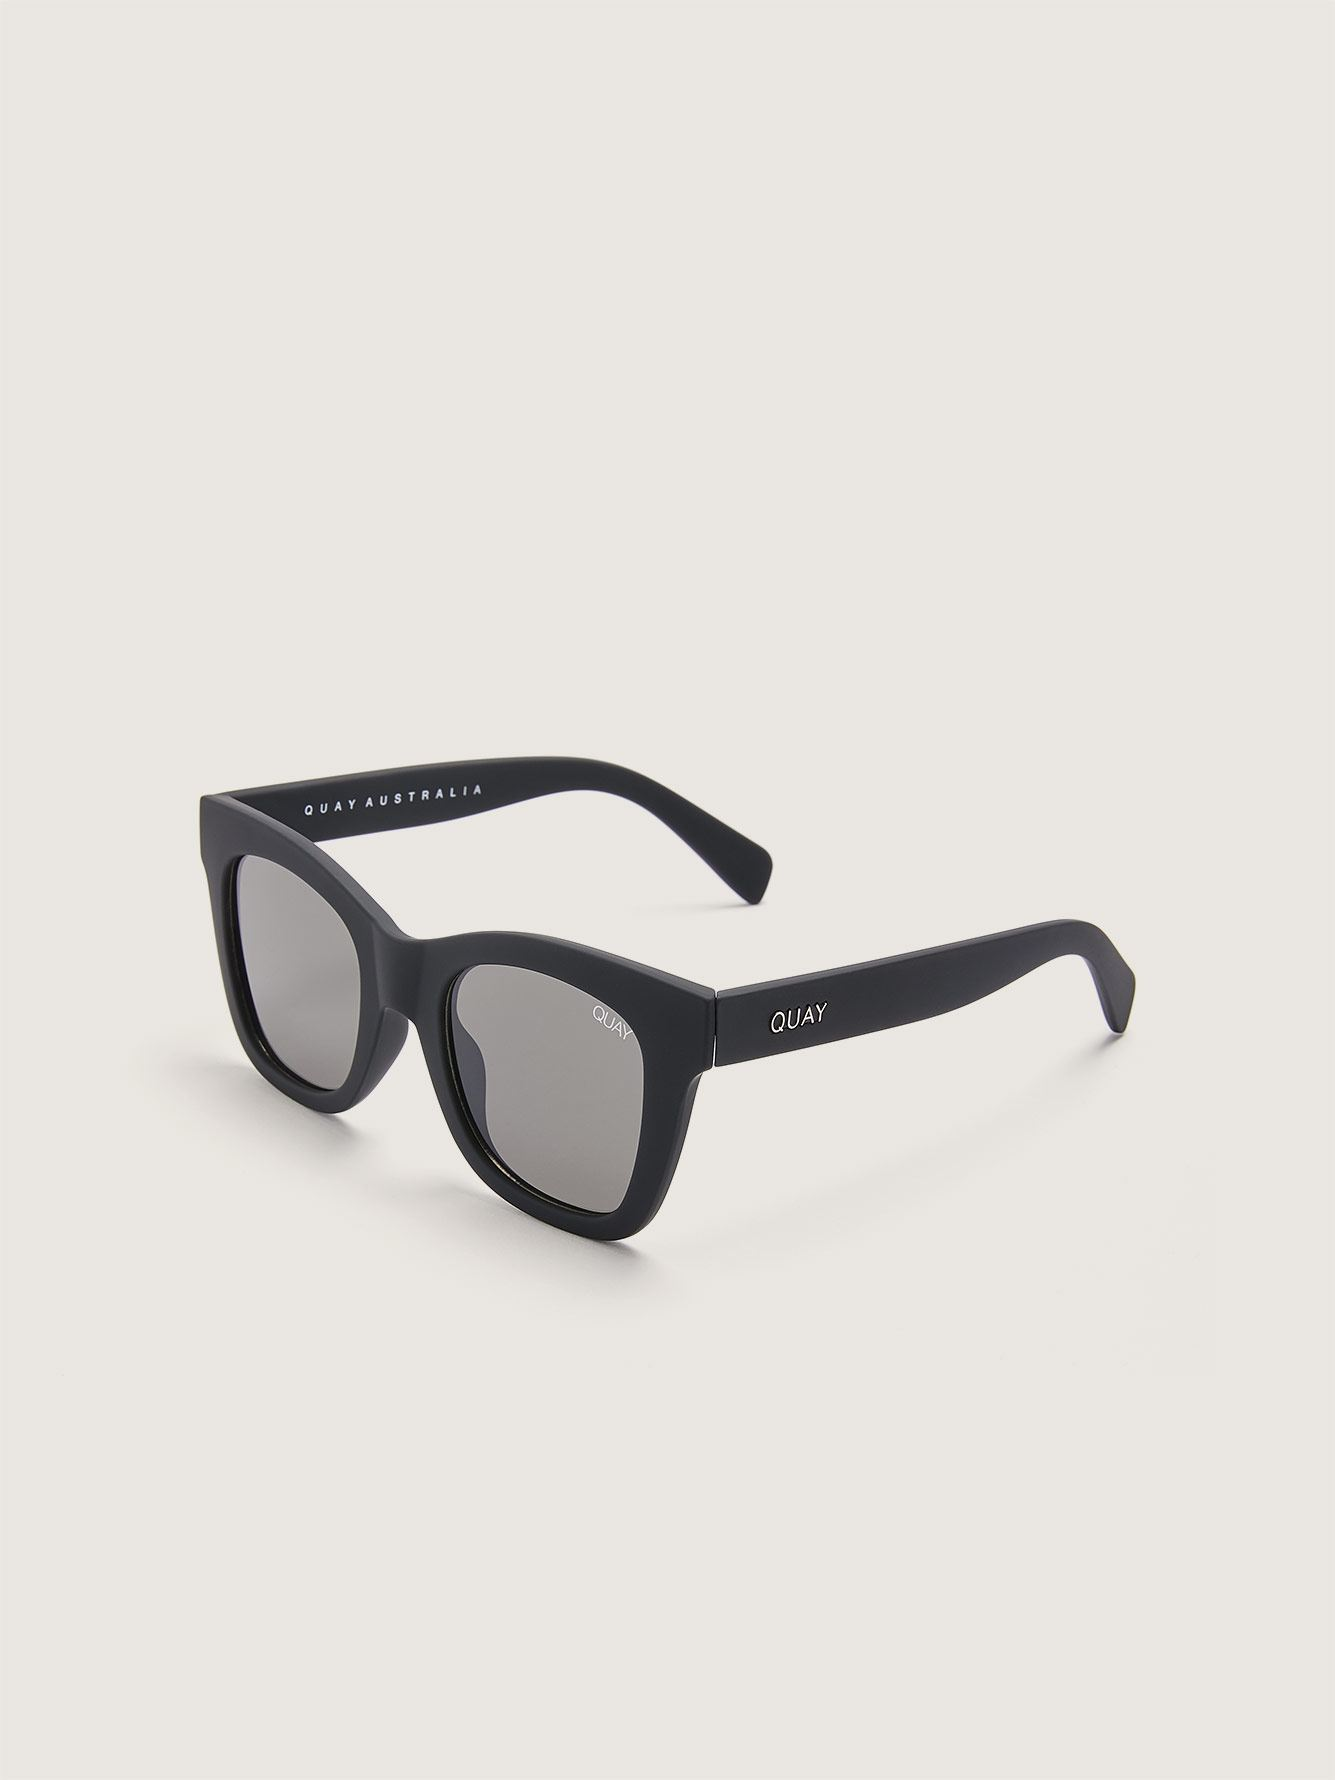 Quay, After Hours - Square Sunglasses